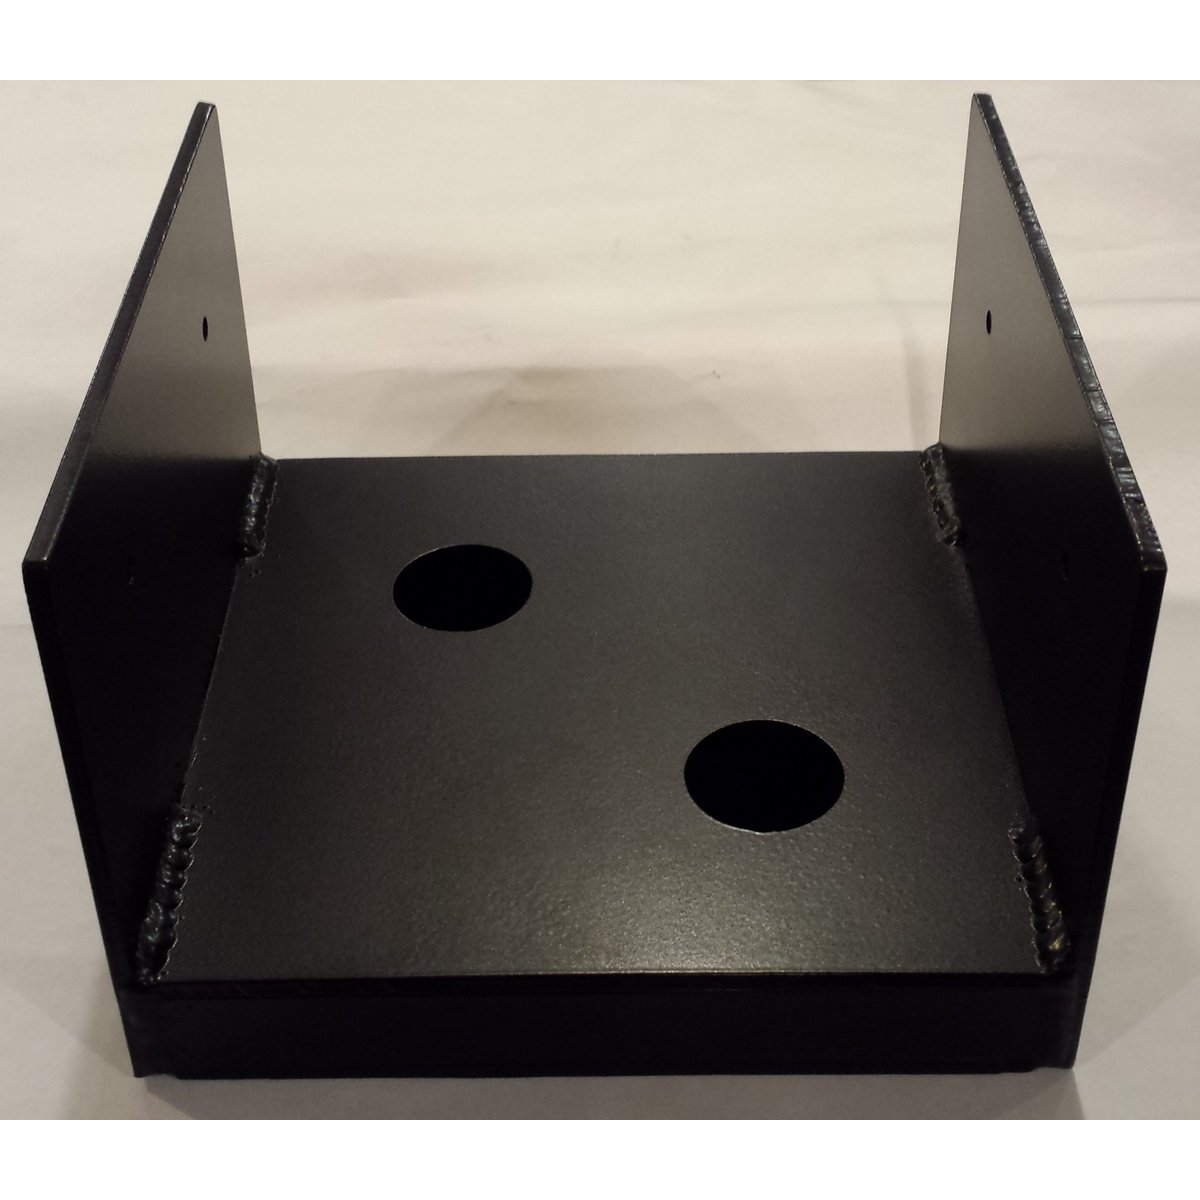 Uplift Post Base Brackets with Inside Floor Mounts Painted Black